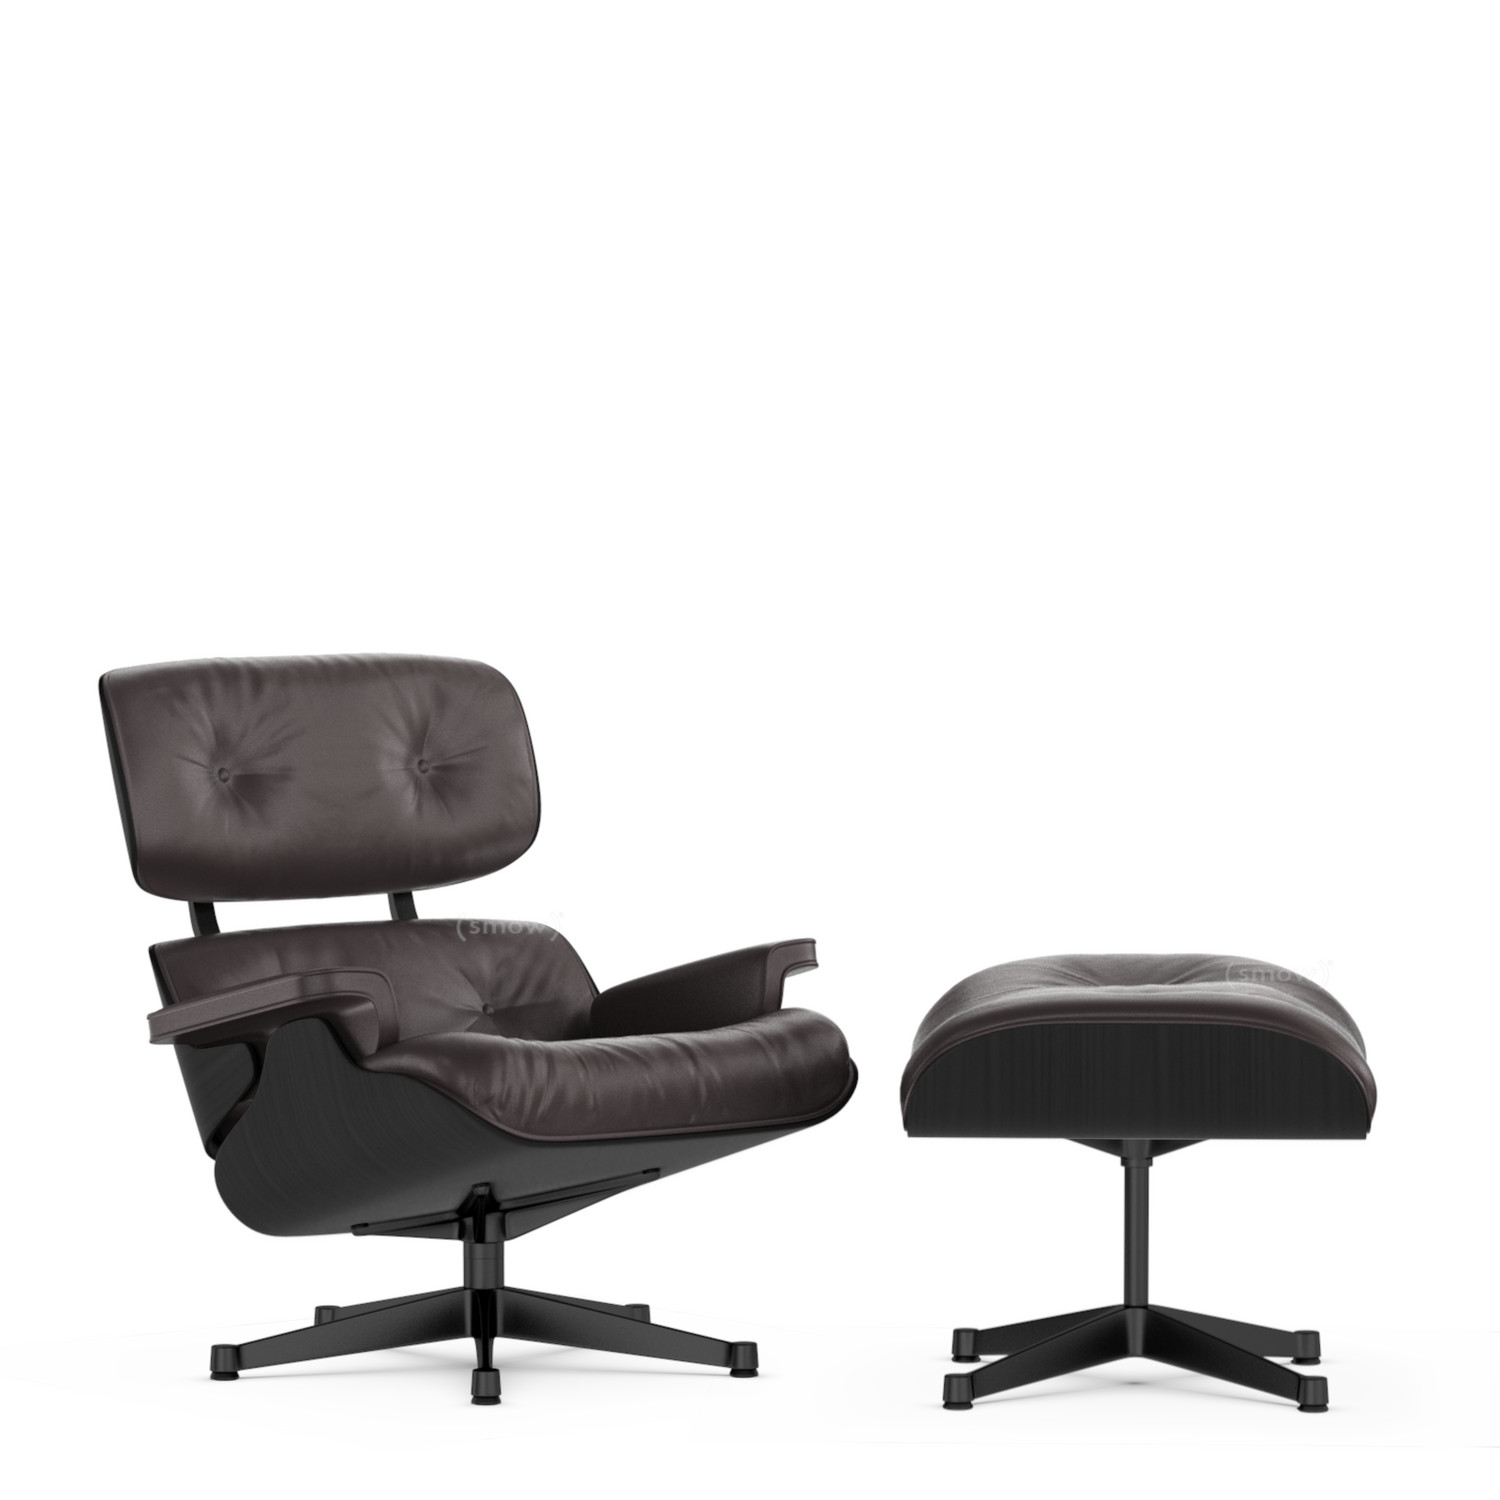 vitra lounge chair ottoman beauty versions by charles ray eames 1956 designer furniture. Black Bedroom Furniture Sets. Home Design Ideas